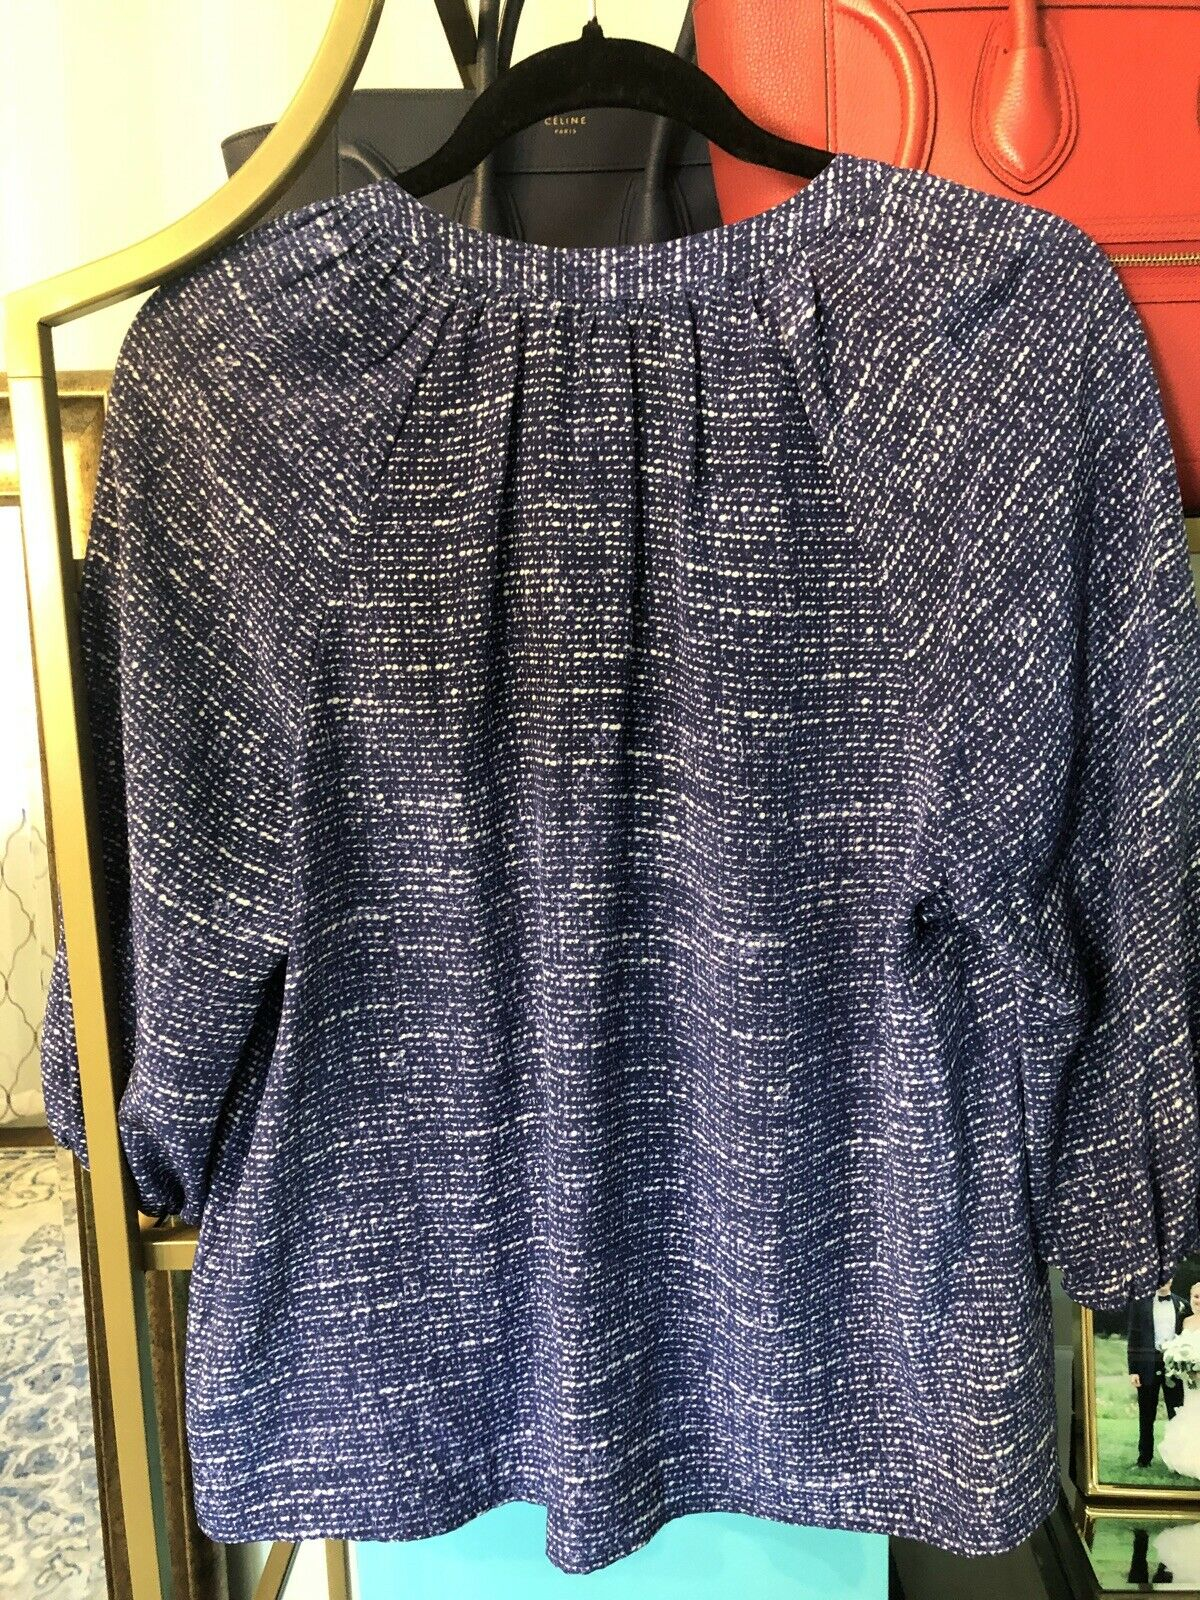 Joie Addie Blouse Top Small - image 4